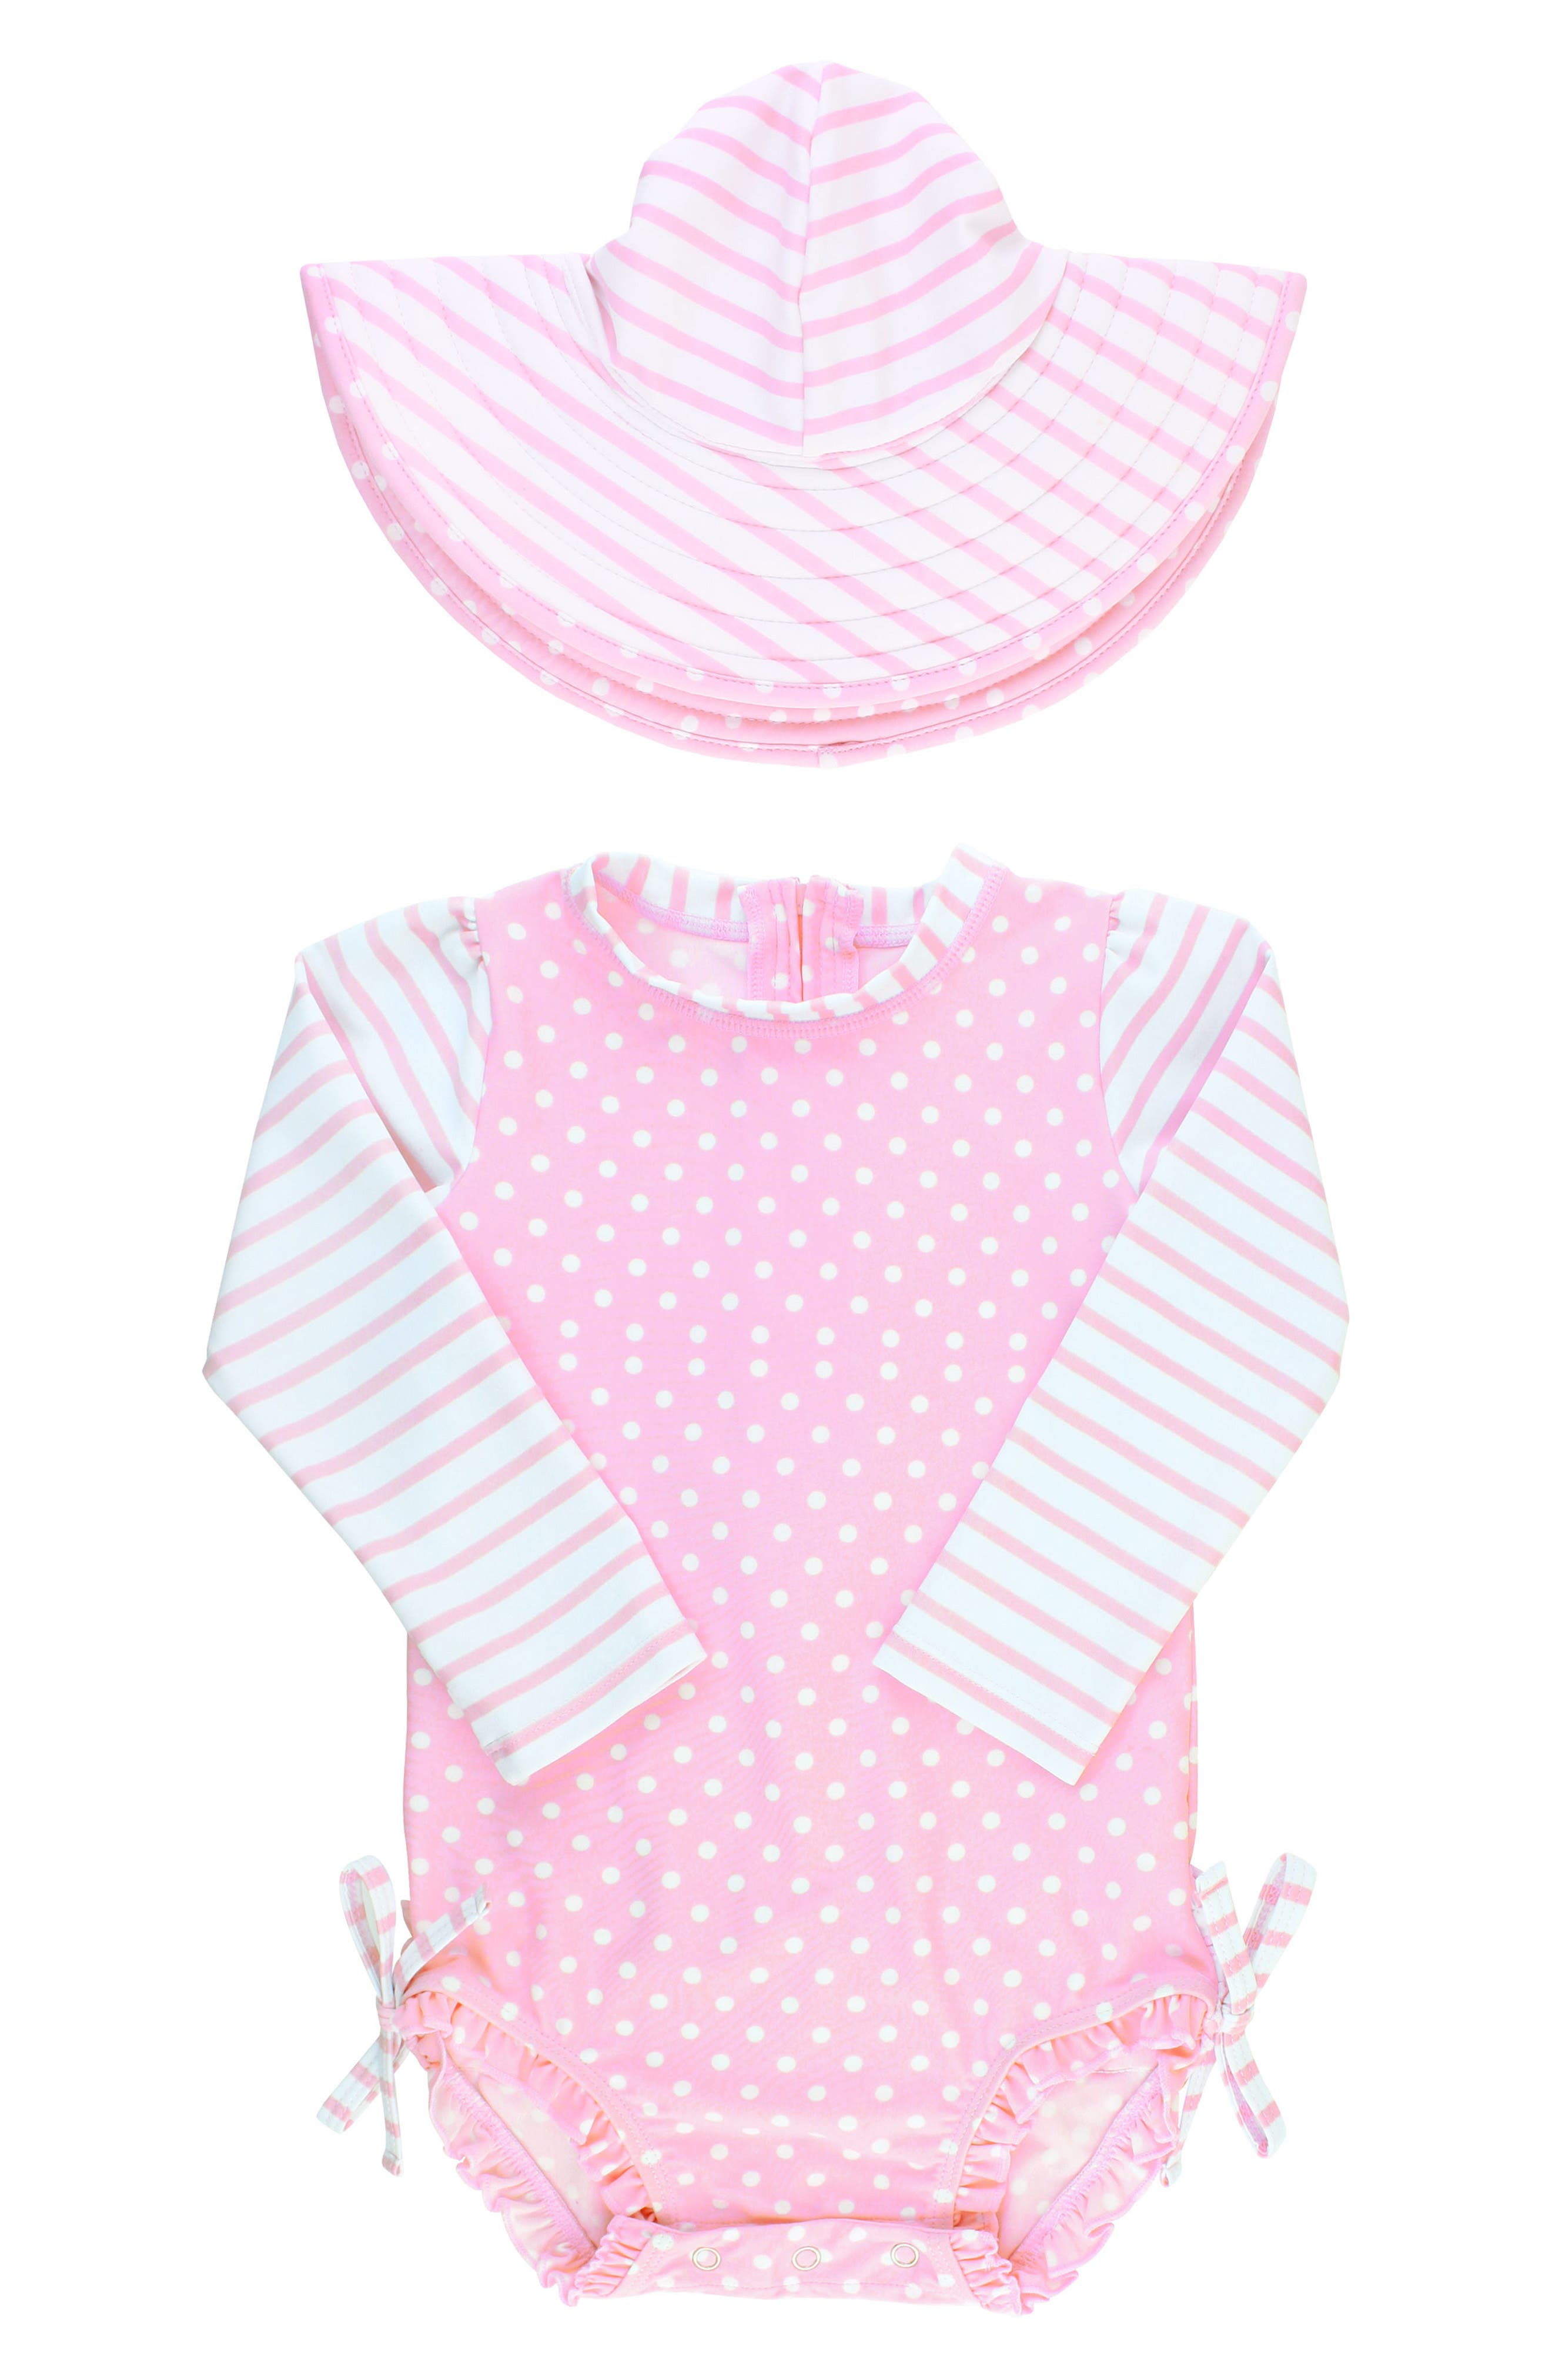 She\\\'ll be extra cute in this charming polka-dot set featuring a long-sleeve rashguard swimsuit with sweet ruffles across the bottom and a coordinating sun hat. Style Name: Ruffle Butts Polka Dot One-Piece Rashguard Swimsuit & Sun Hat Set (Baby). Style Number: 5487374. Available in stores.